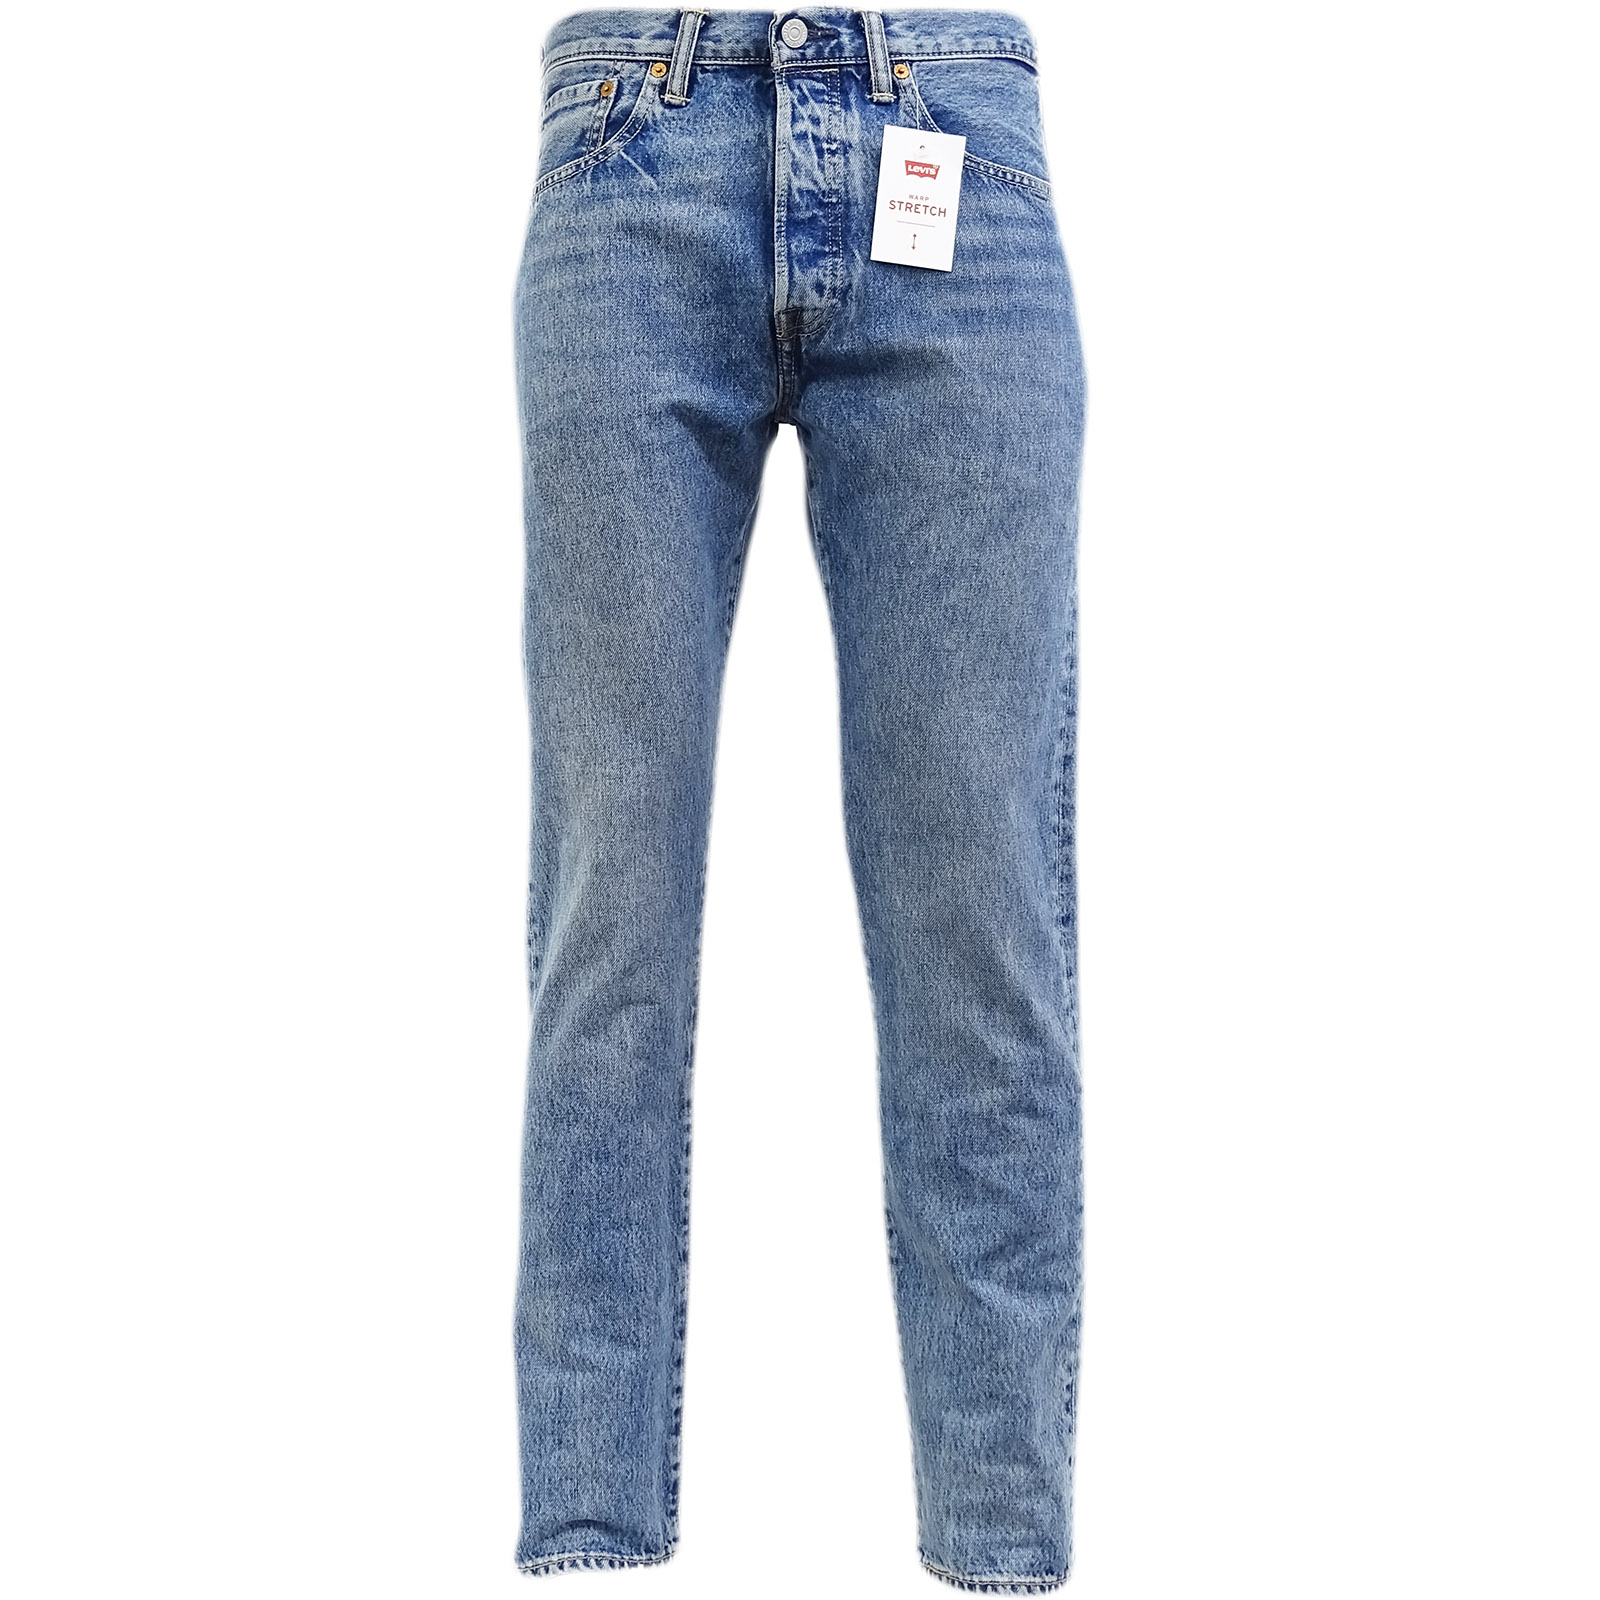 executive summary levi strauss Executive summary levi strauss & co is a privately held clothing company founded in 1853 it is the global leader in denim jeans in more than.